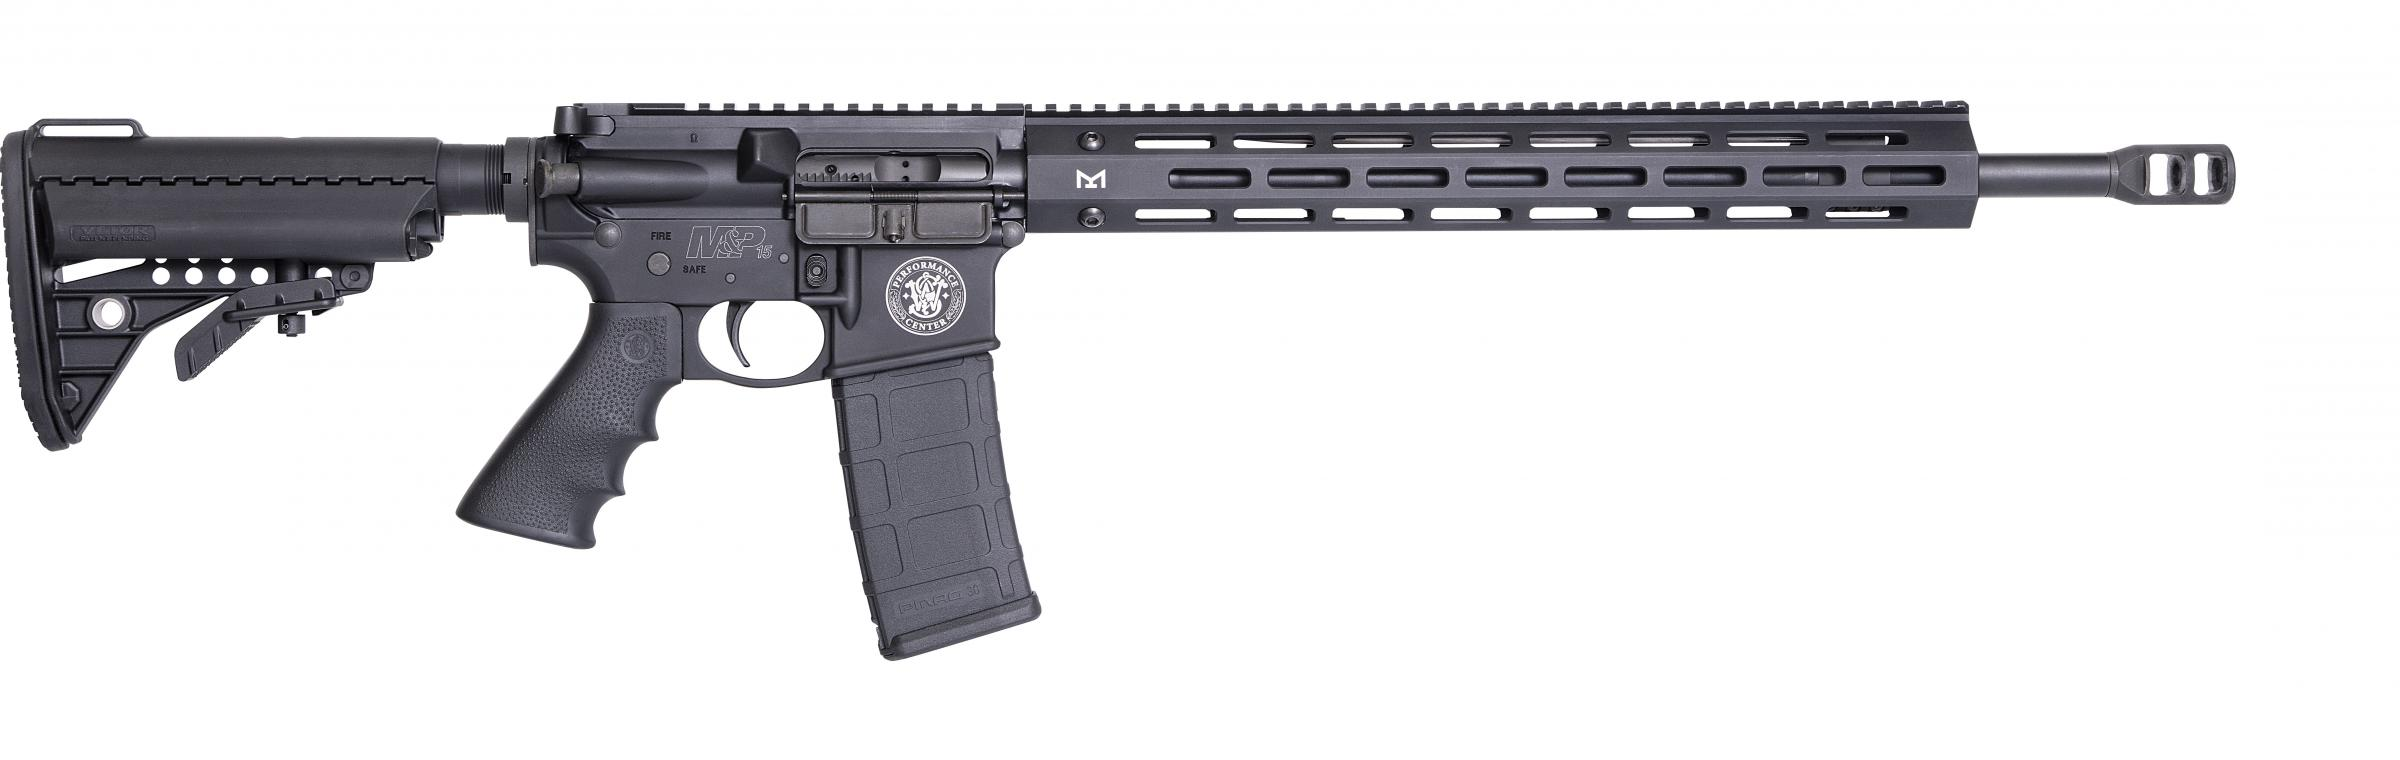 Smith and Wesson M&P15 Competition 223 Rem | 5.56 NATO